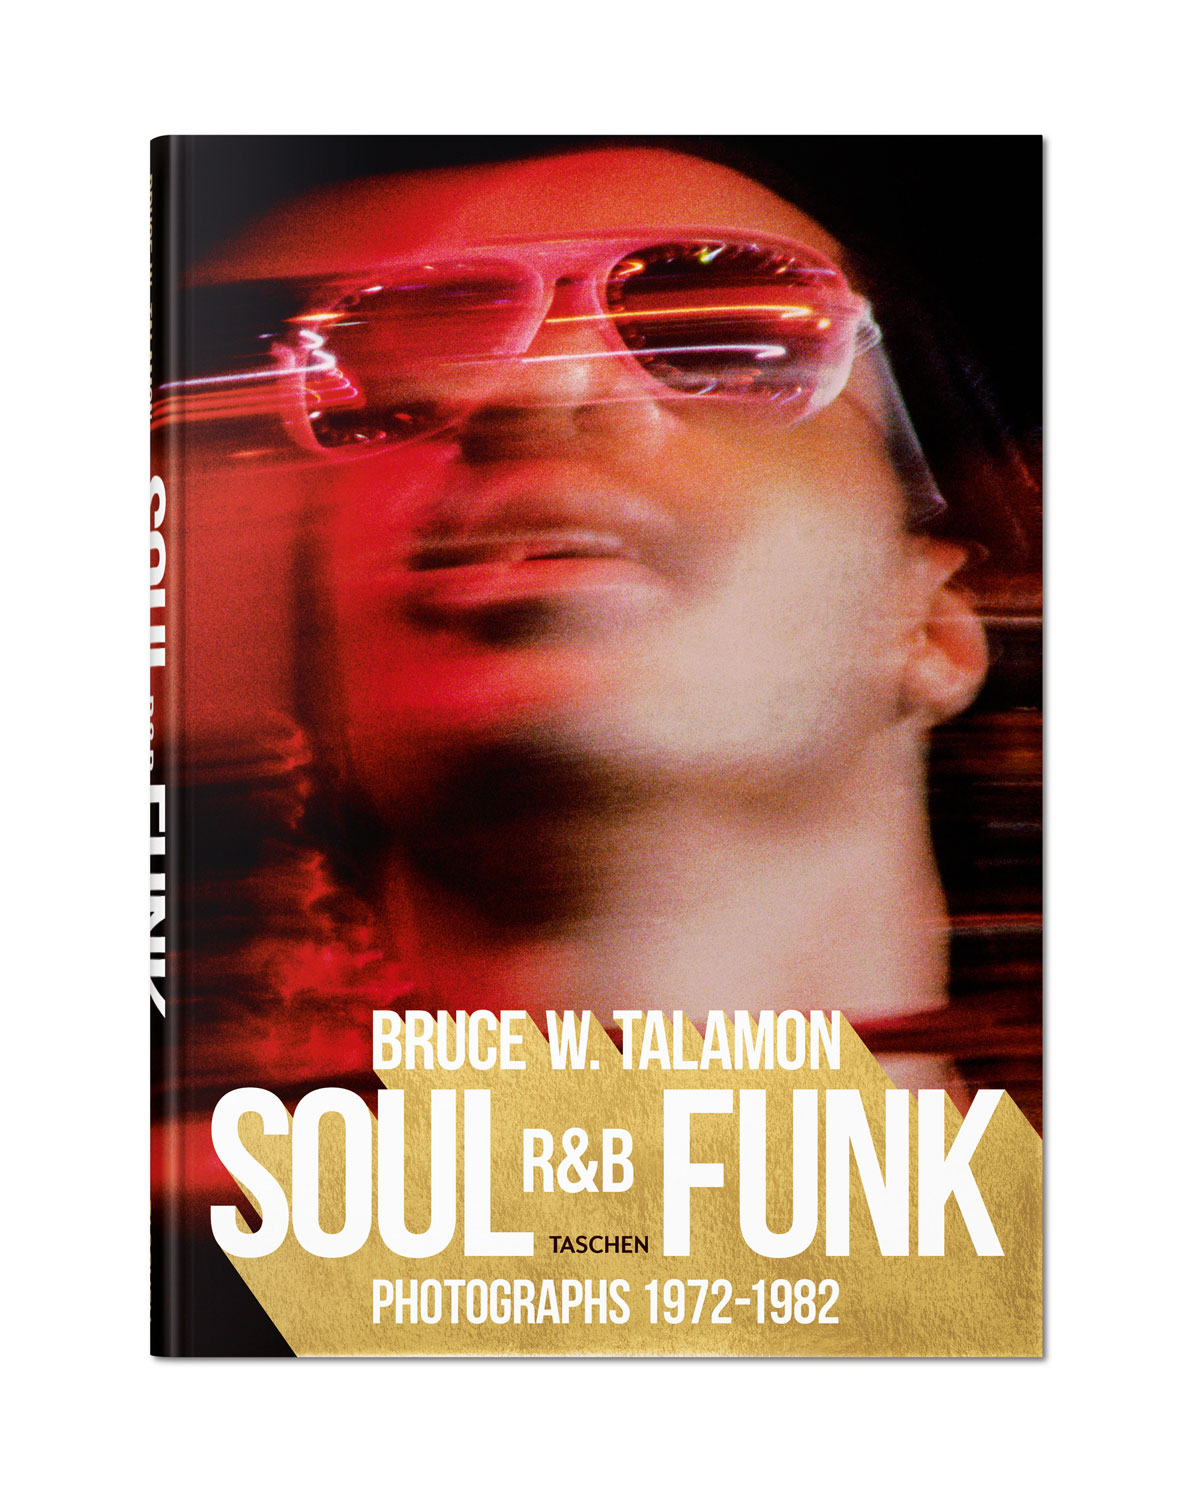 "Get down with such legends as Marvin Gaye, Earth, Wind & Fire, Stevie Wonder, Donna Summer, the Jackson Five, Diana Ross, James Brown, and Chaka Khan in this collection of largely unseen images from the golden age of soul, R & B, and funk. Sourced from our superfly Art Edition, this XL volume gathers all of the glamour and groove captured by photographer Bruce W. Talamon. 376 pages; nearly 300 images. 9.7""W x 13.5""D. Paper. Made in Italy."